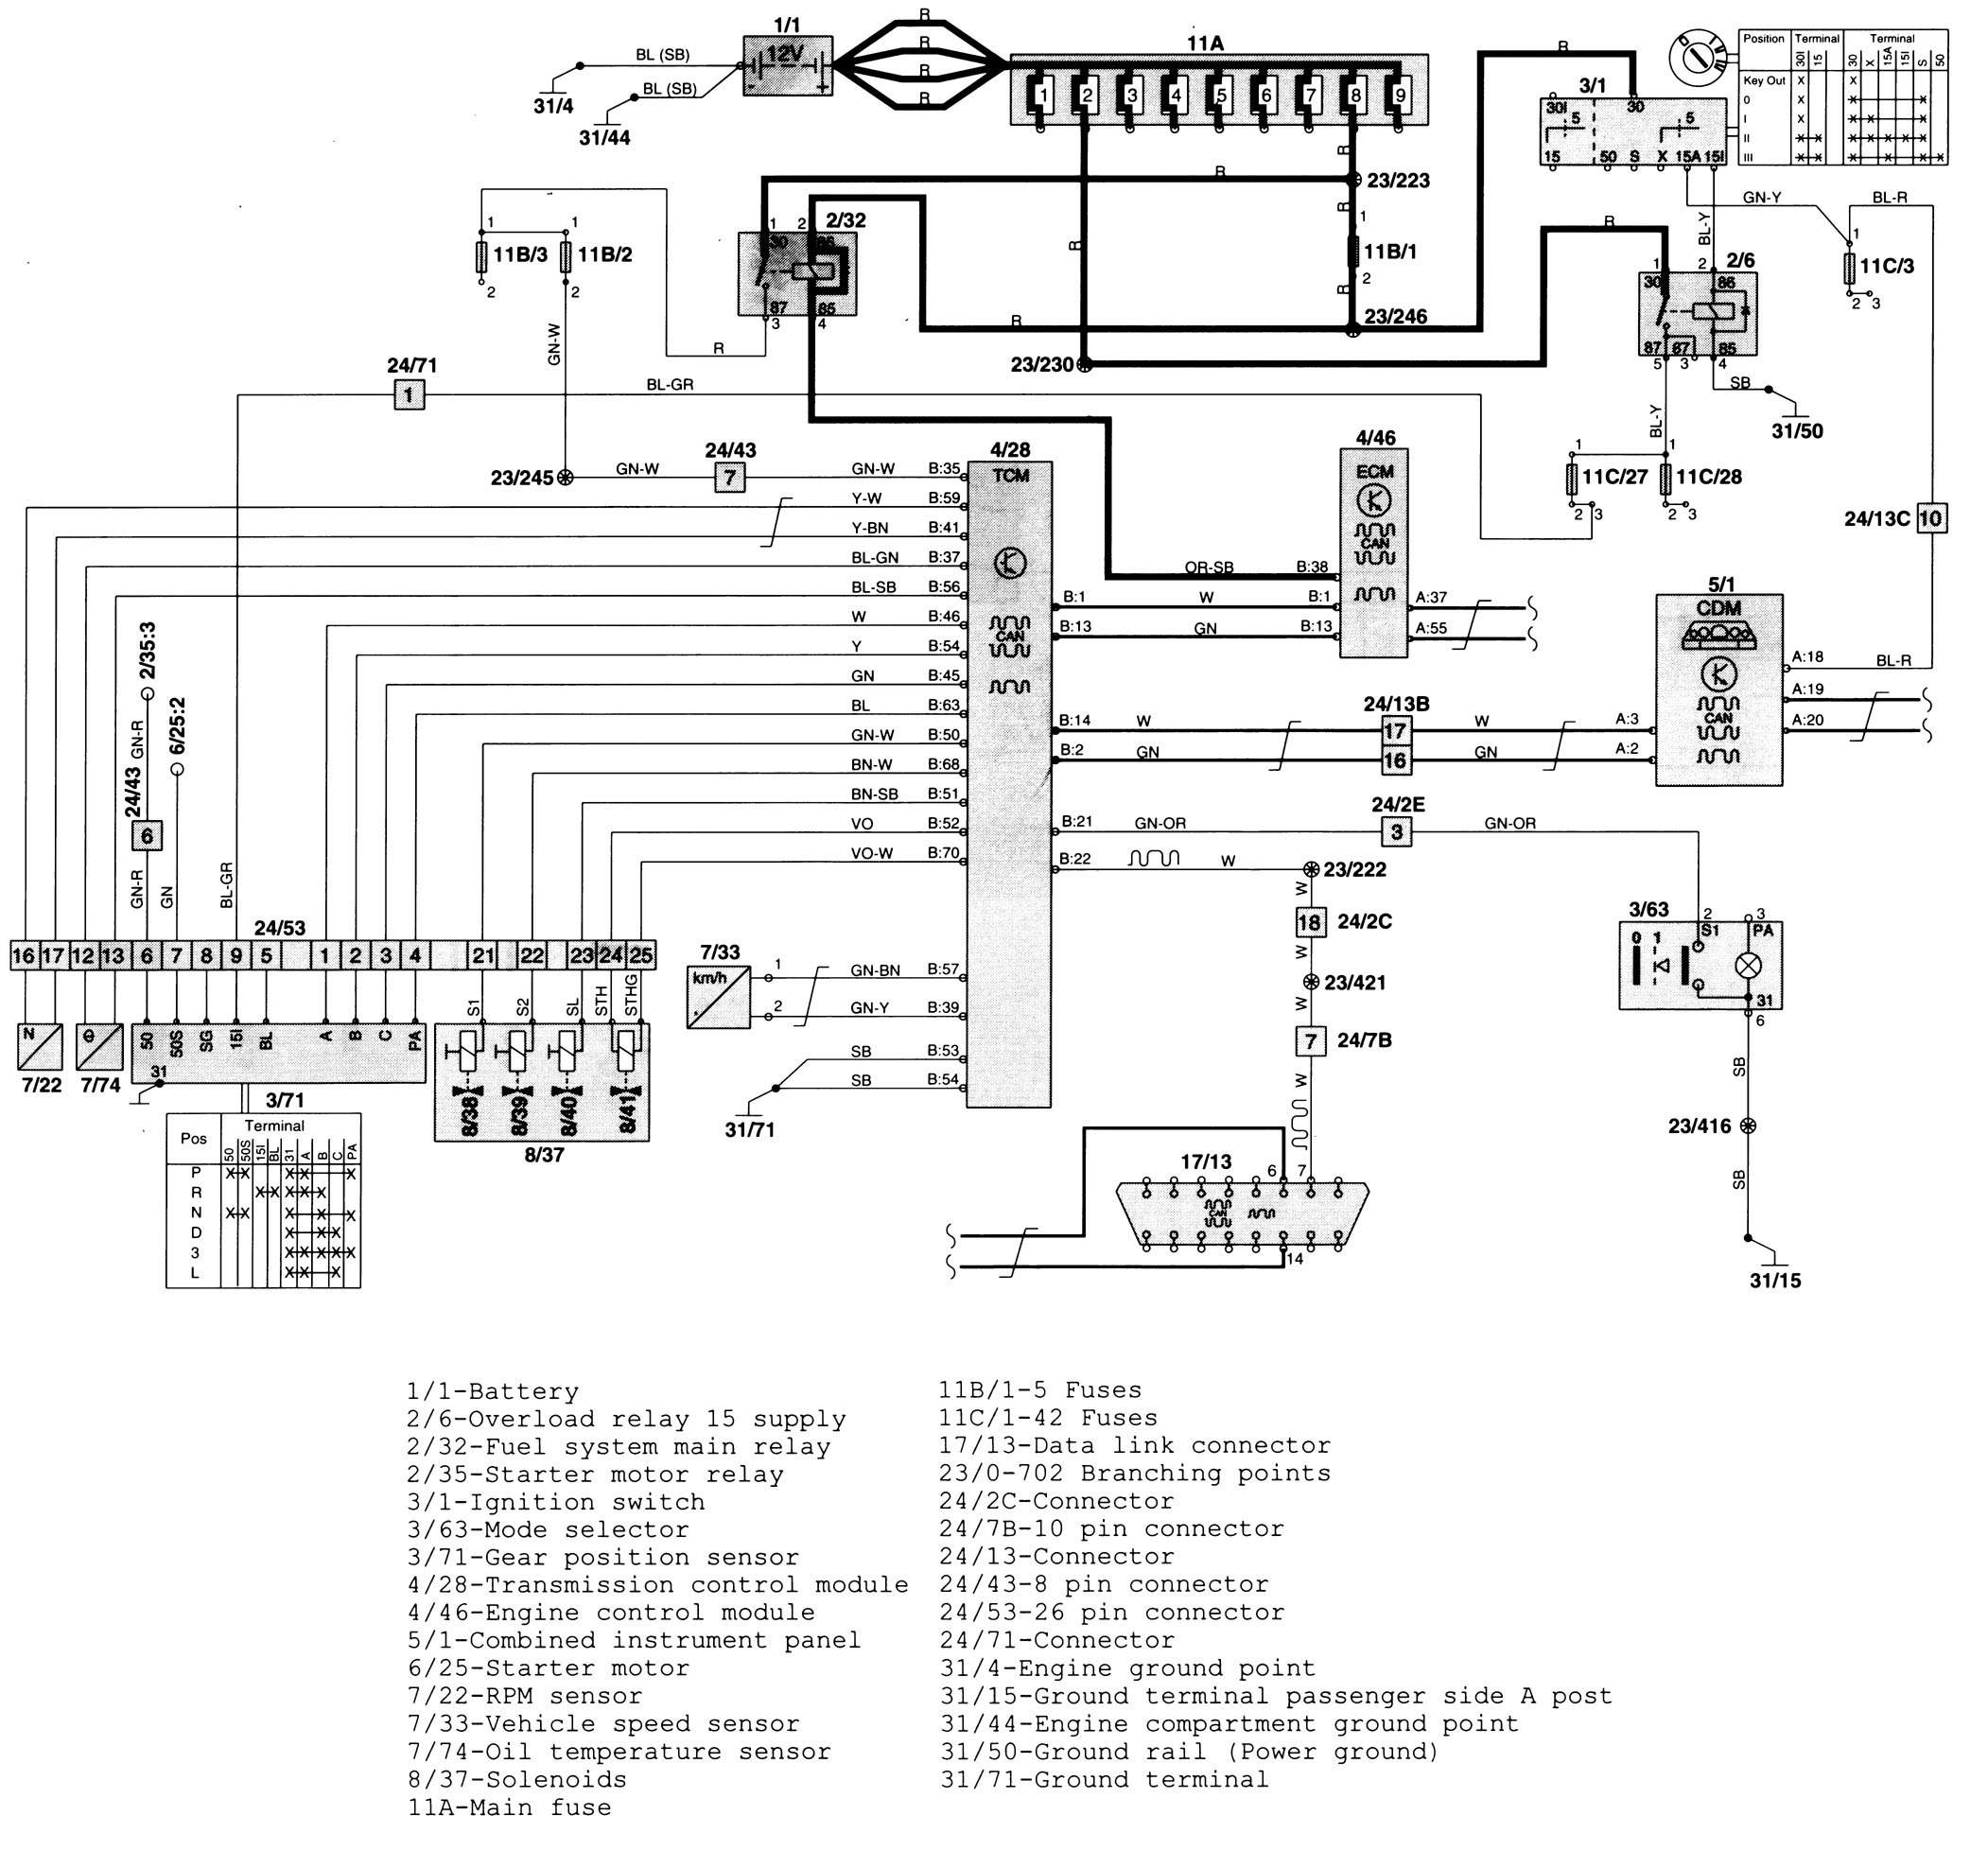 volvo s70 wiring diagram transmission controls 1999 volvo s70 (1999 2000) wiring diagrams transmission controls 2000 volvo s70 wiring diagram at bayanpartner.co